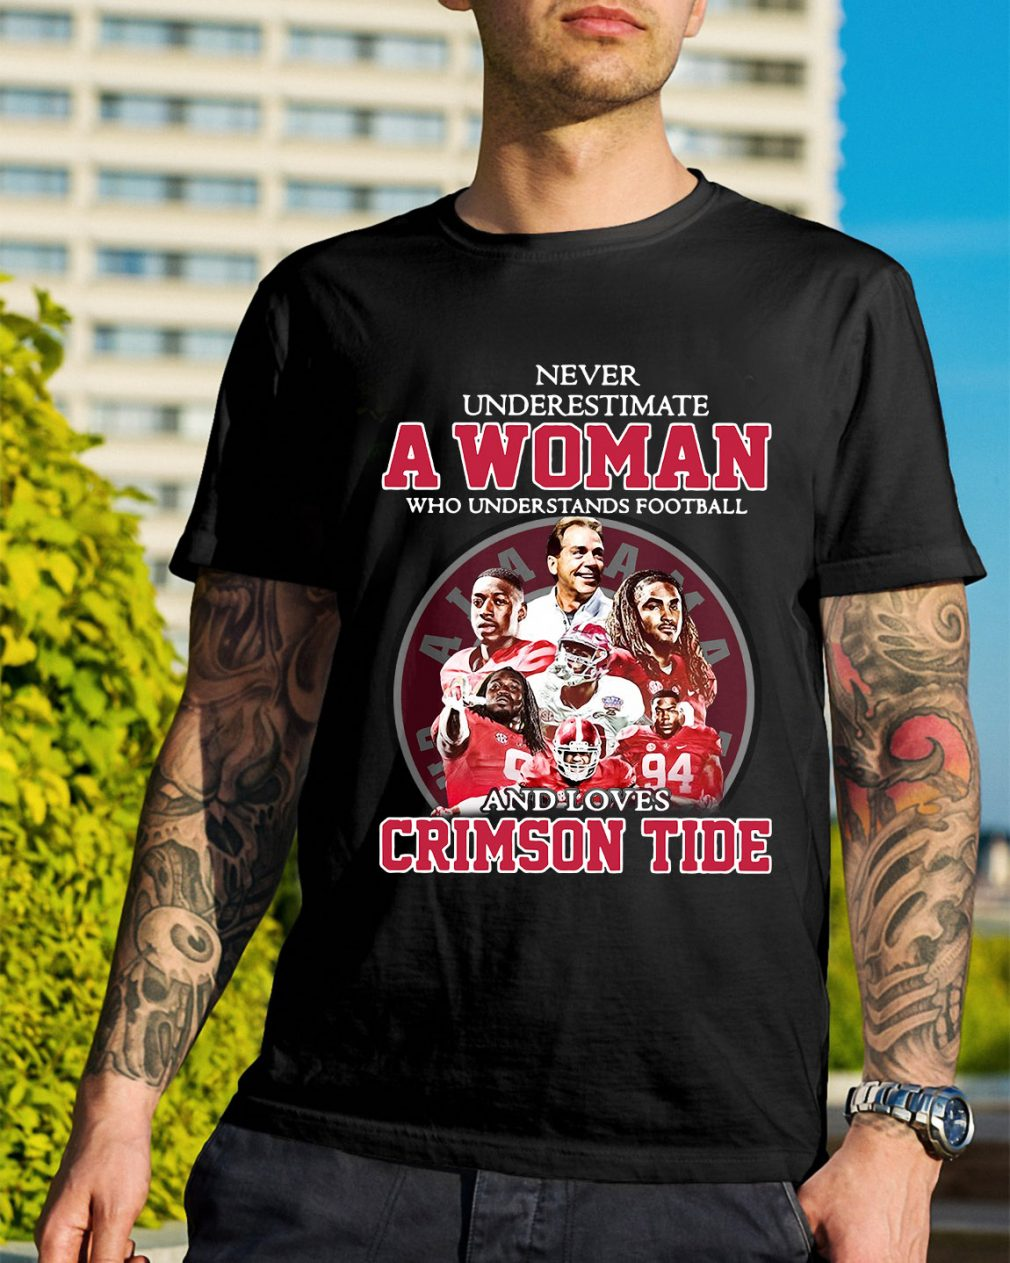 A woman who understands football and loves Crimson Tide shirt